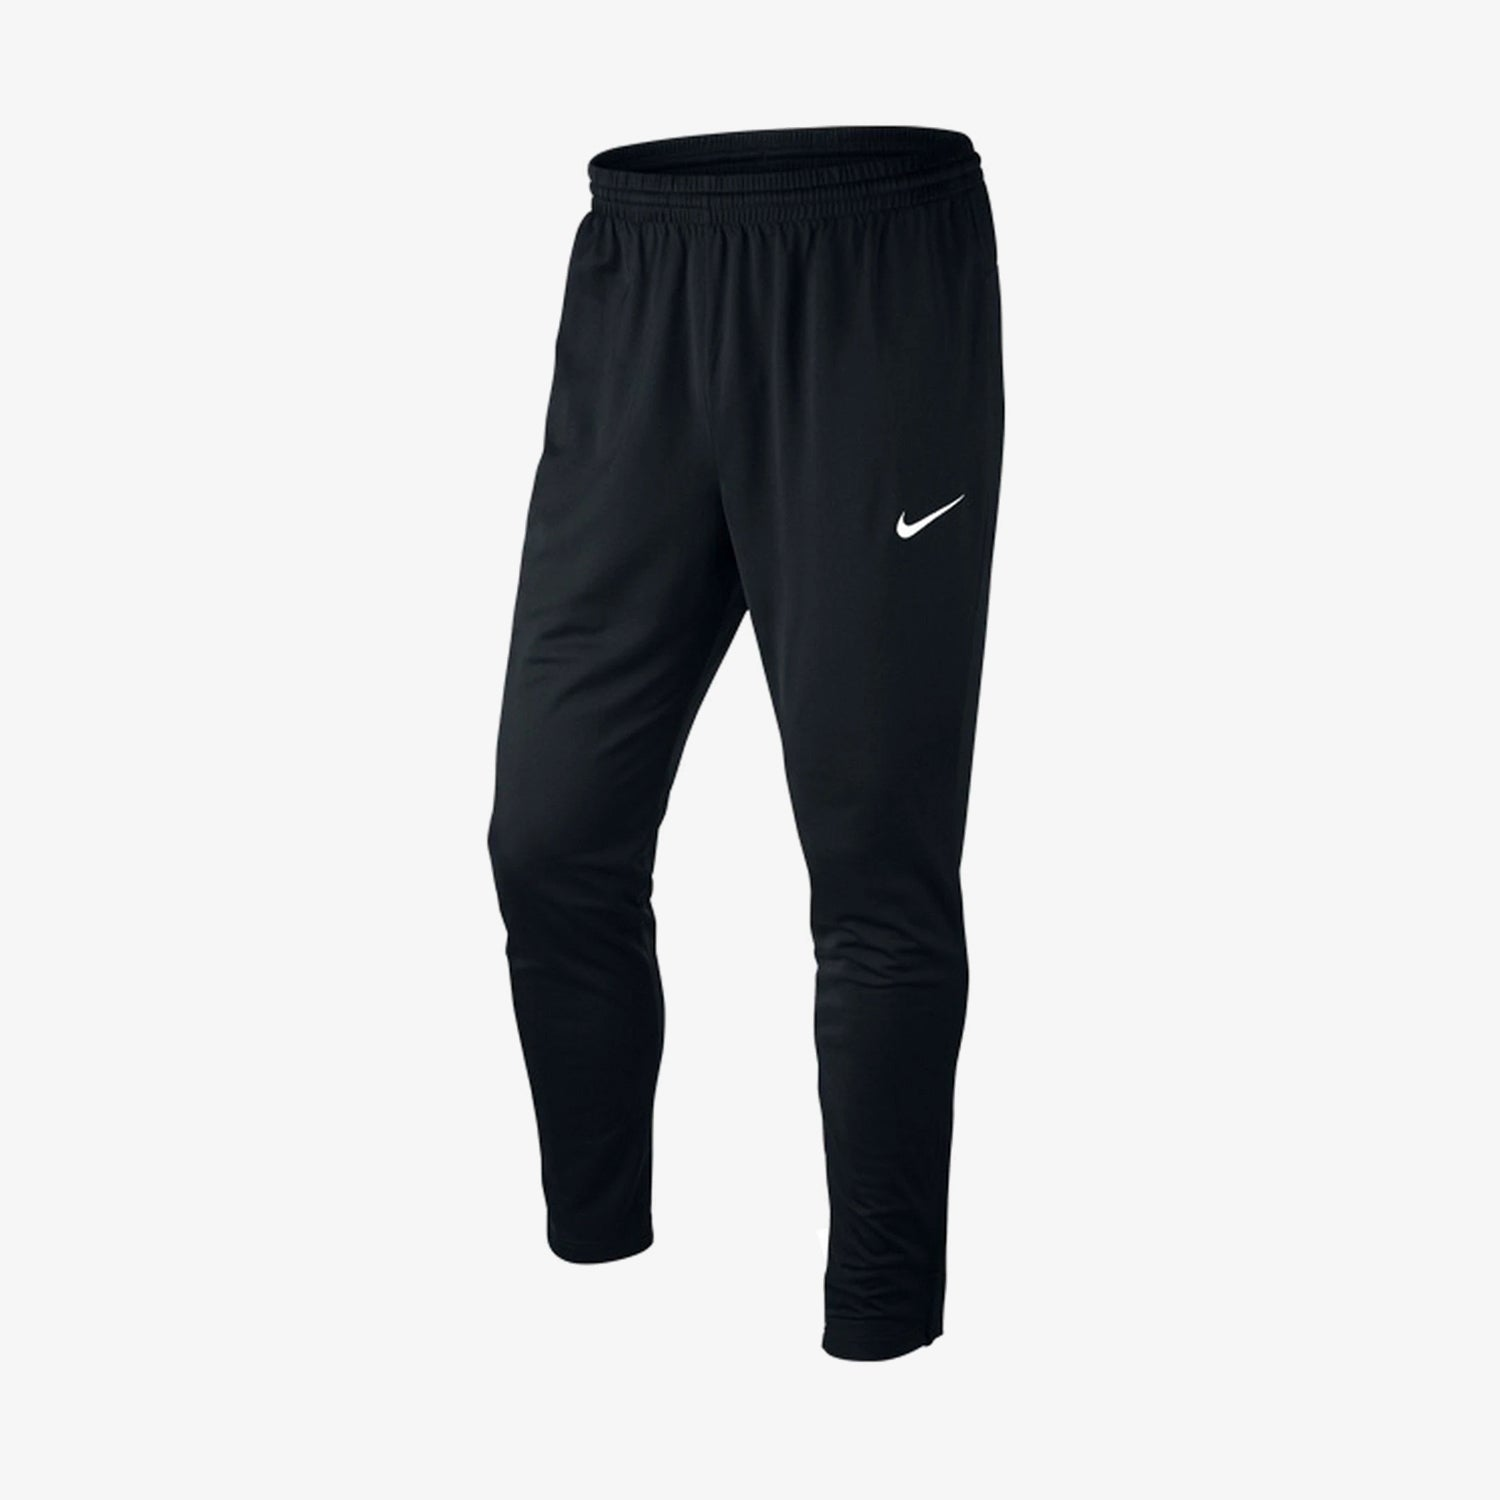 Kid's Libero Tech Knit Soccer Pants